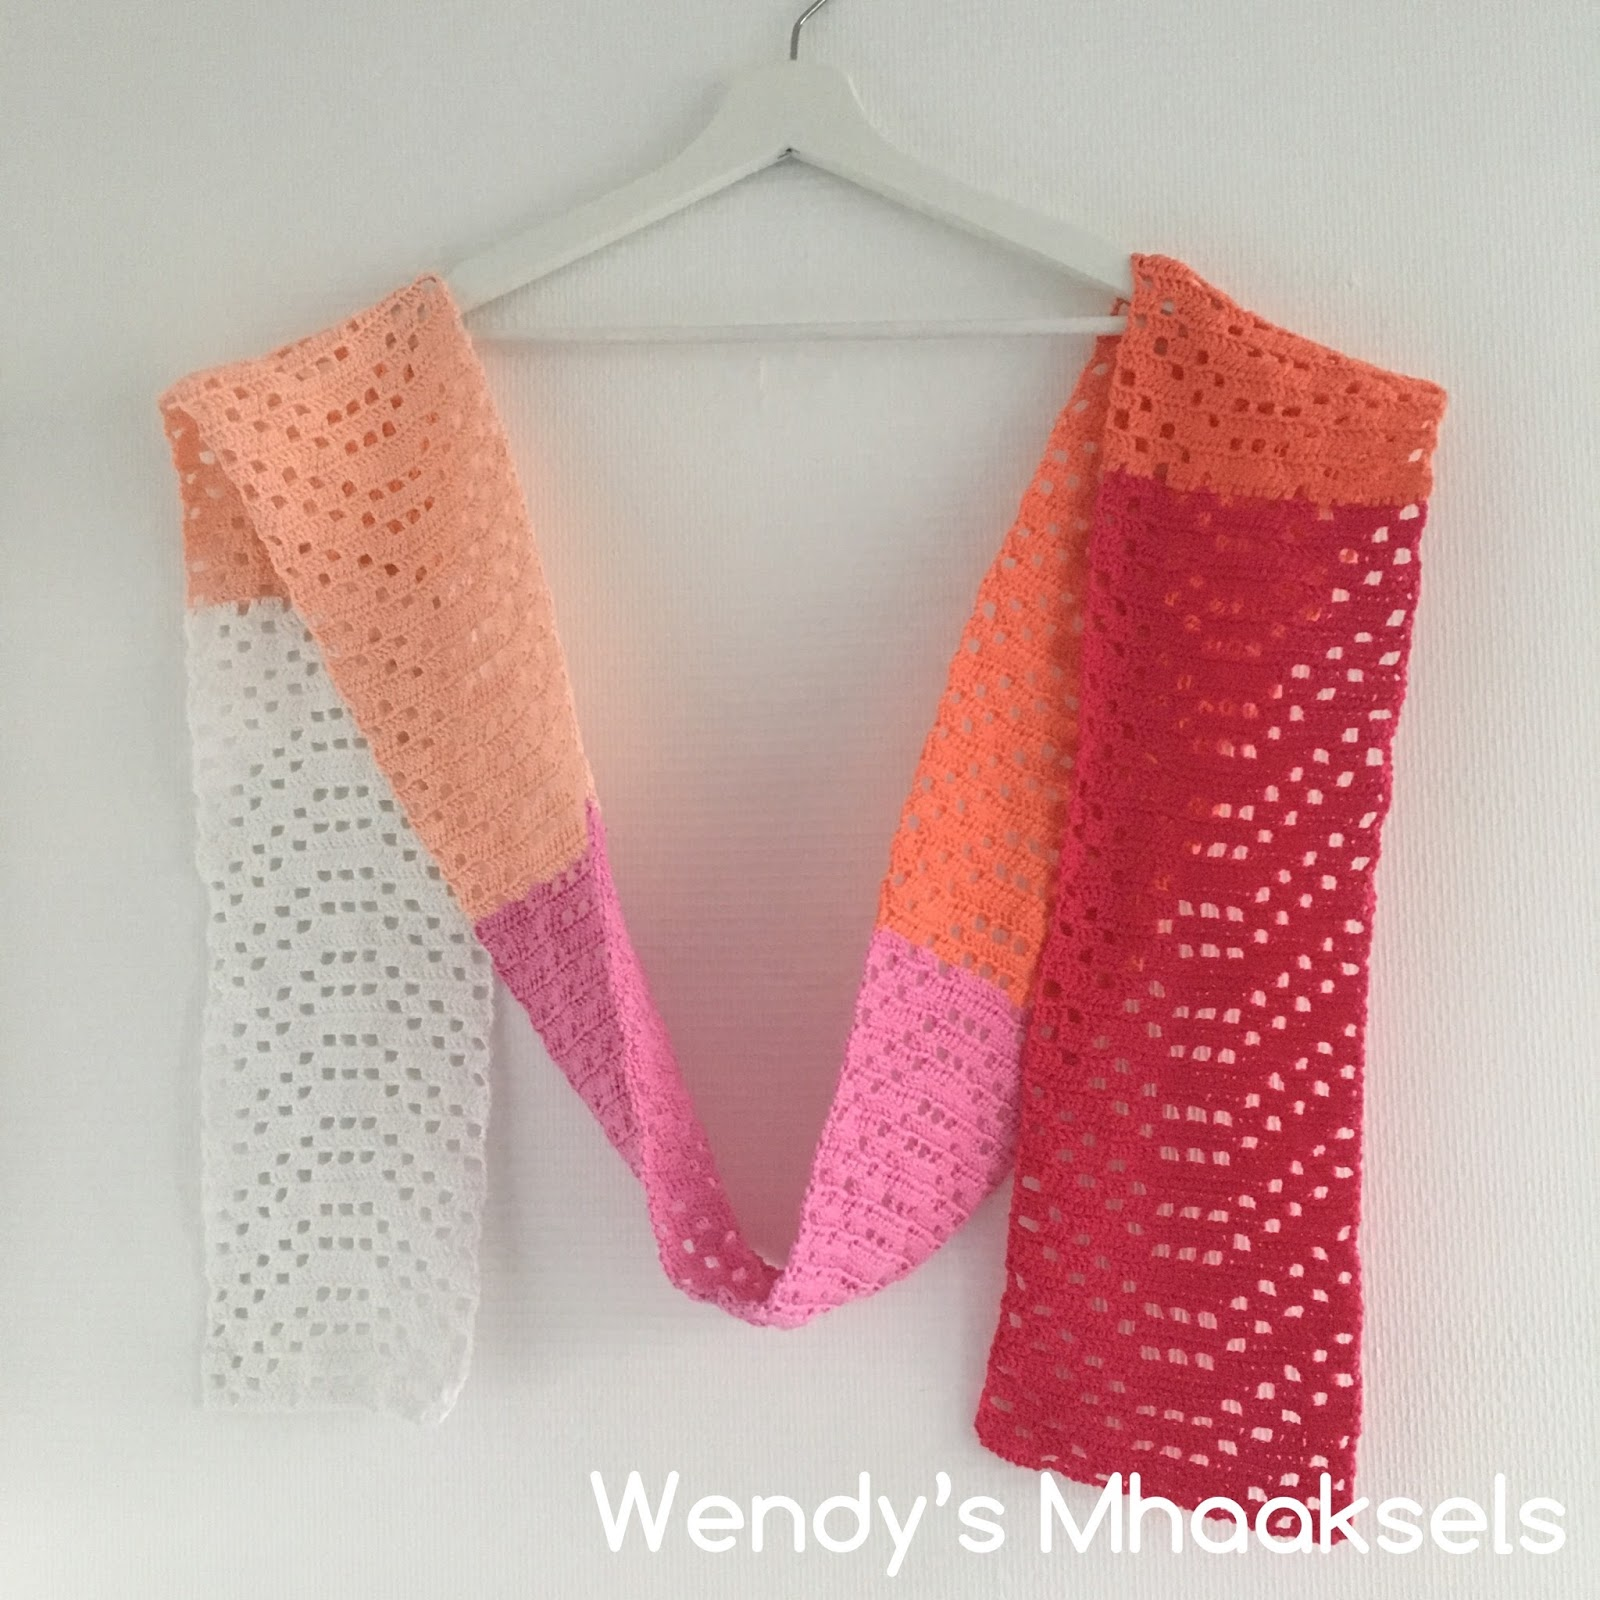 Zomersjaal Summerscarf Wendys Mhaaksels